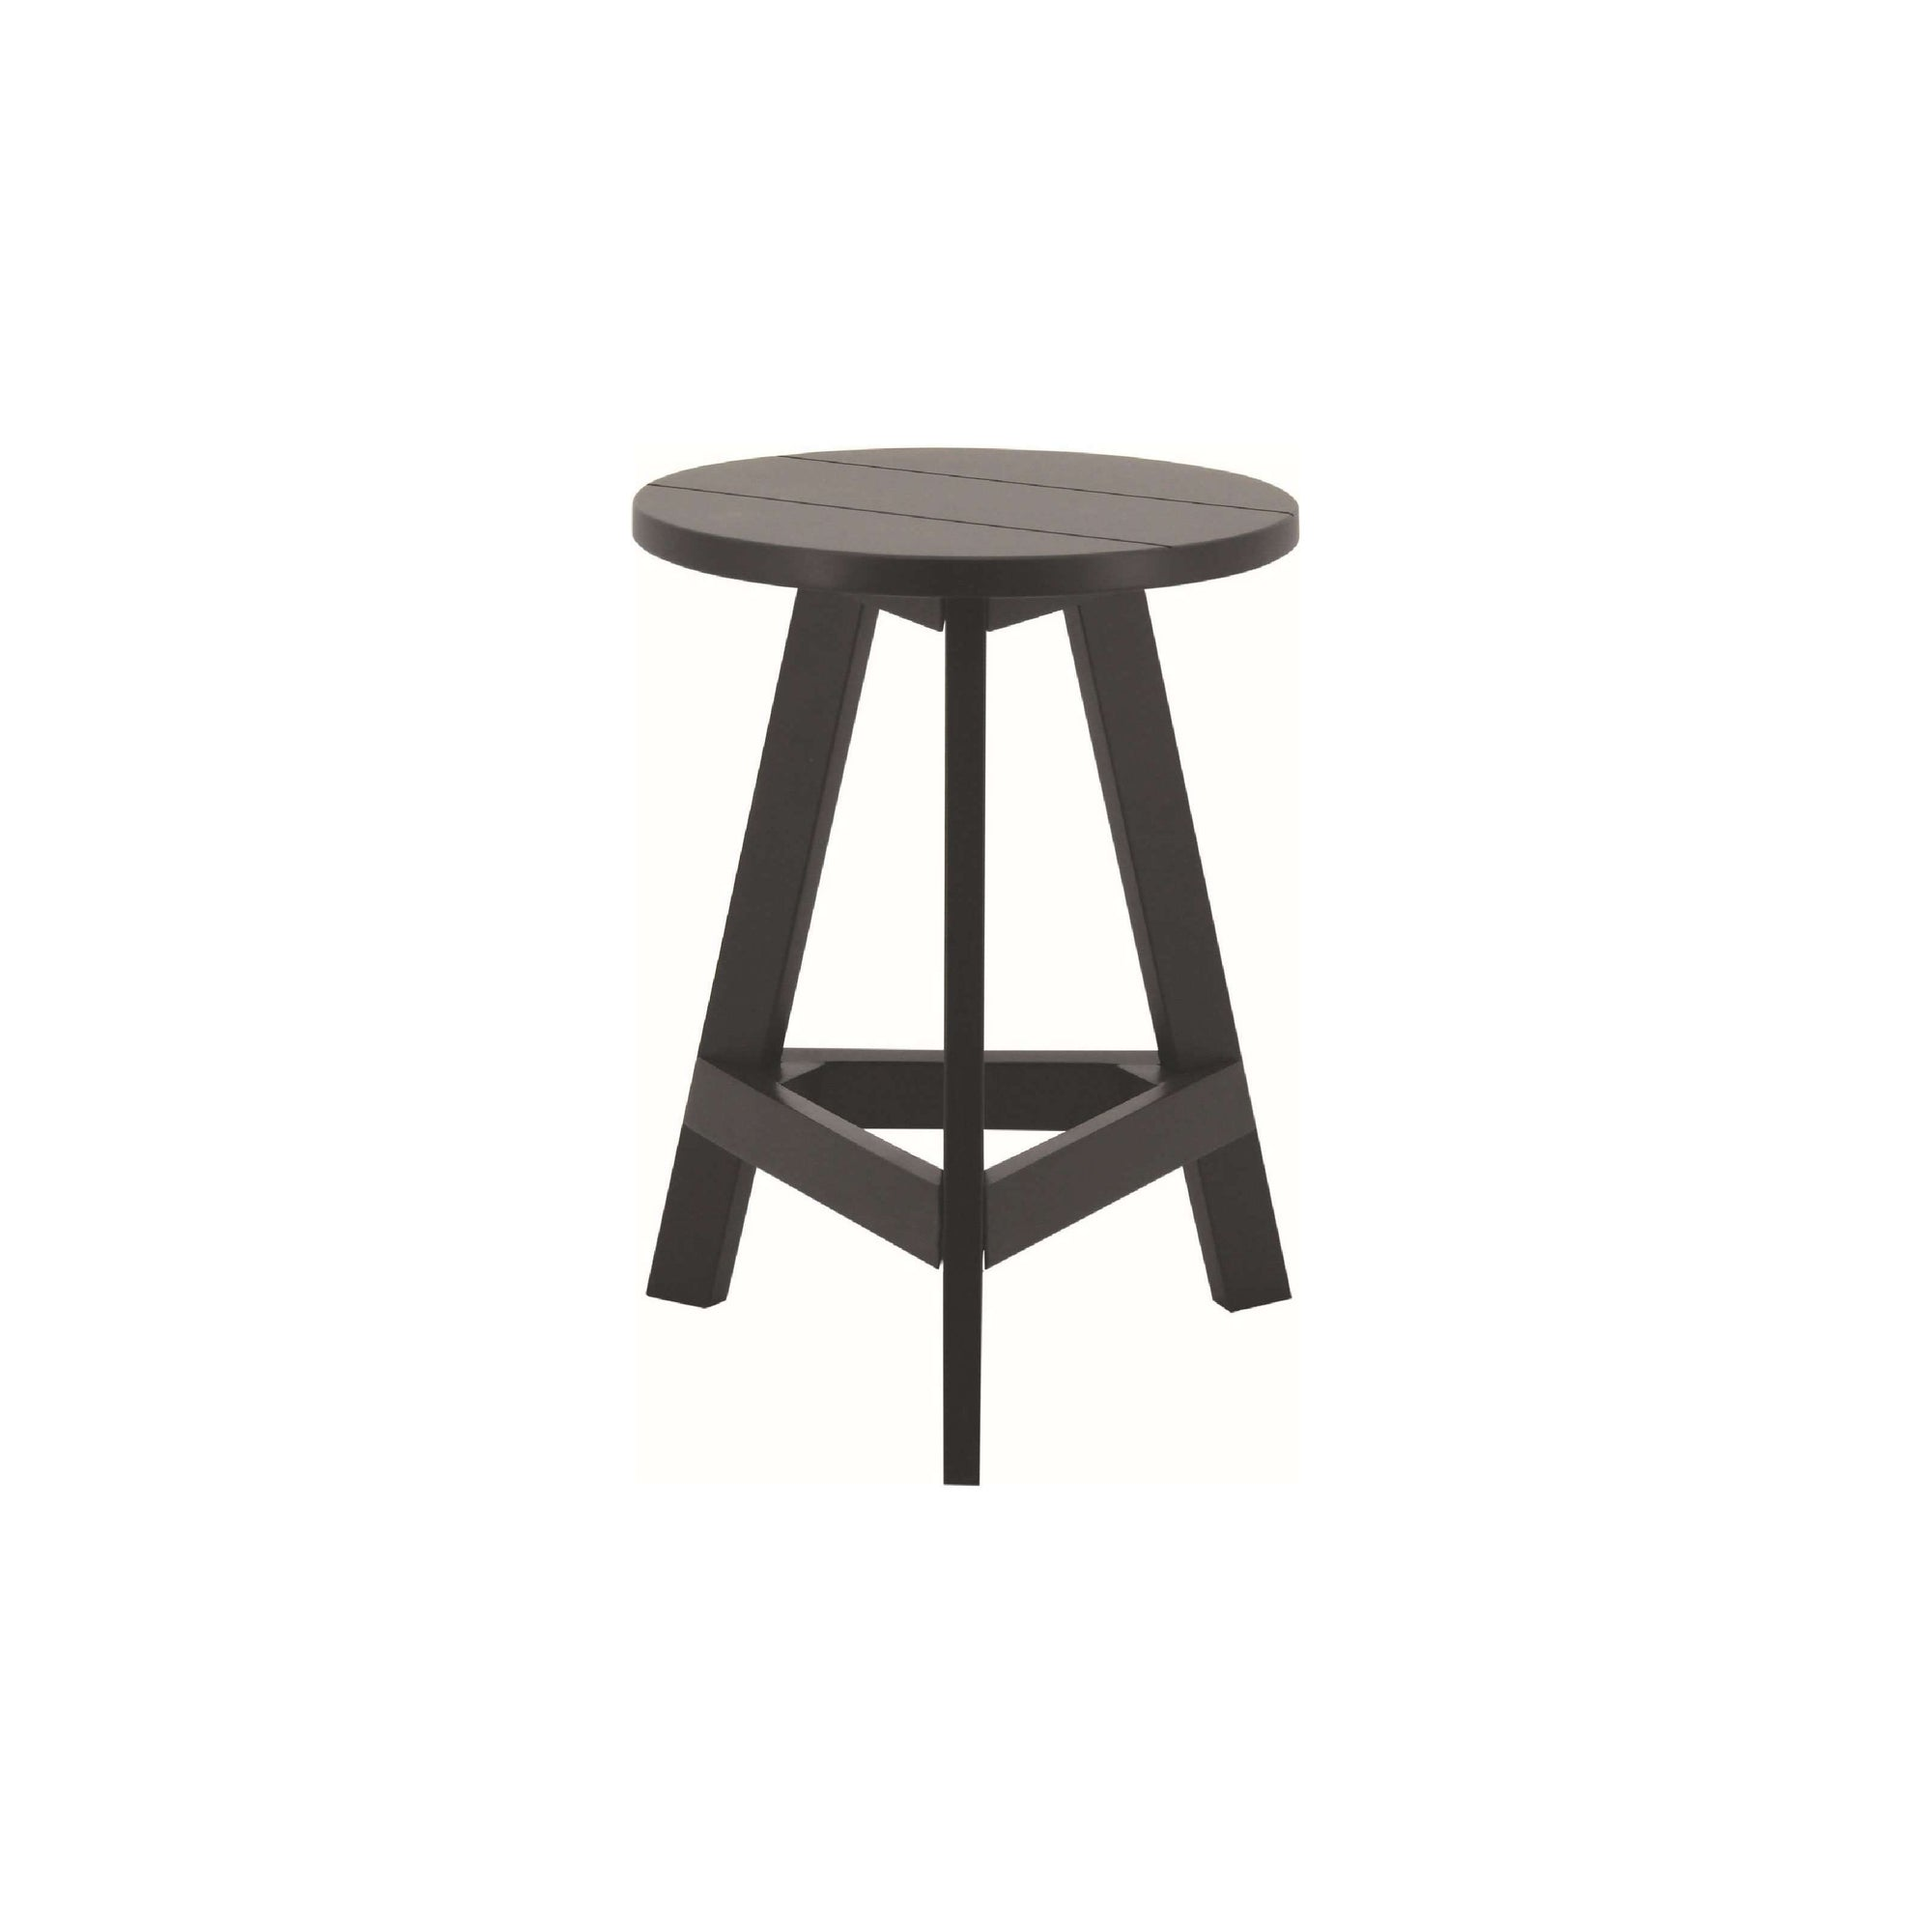 YUMI 4 X Stool in Black Colour